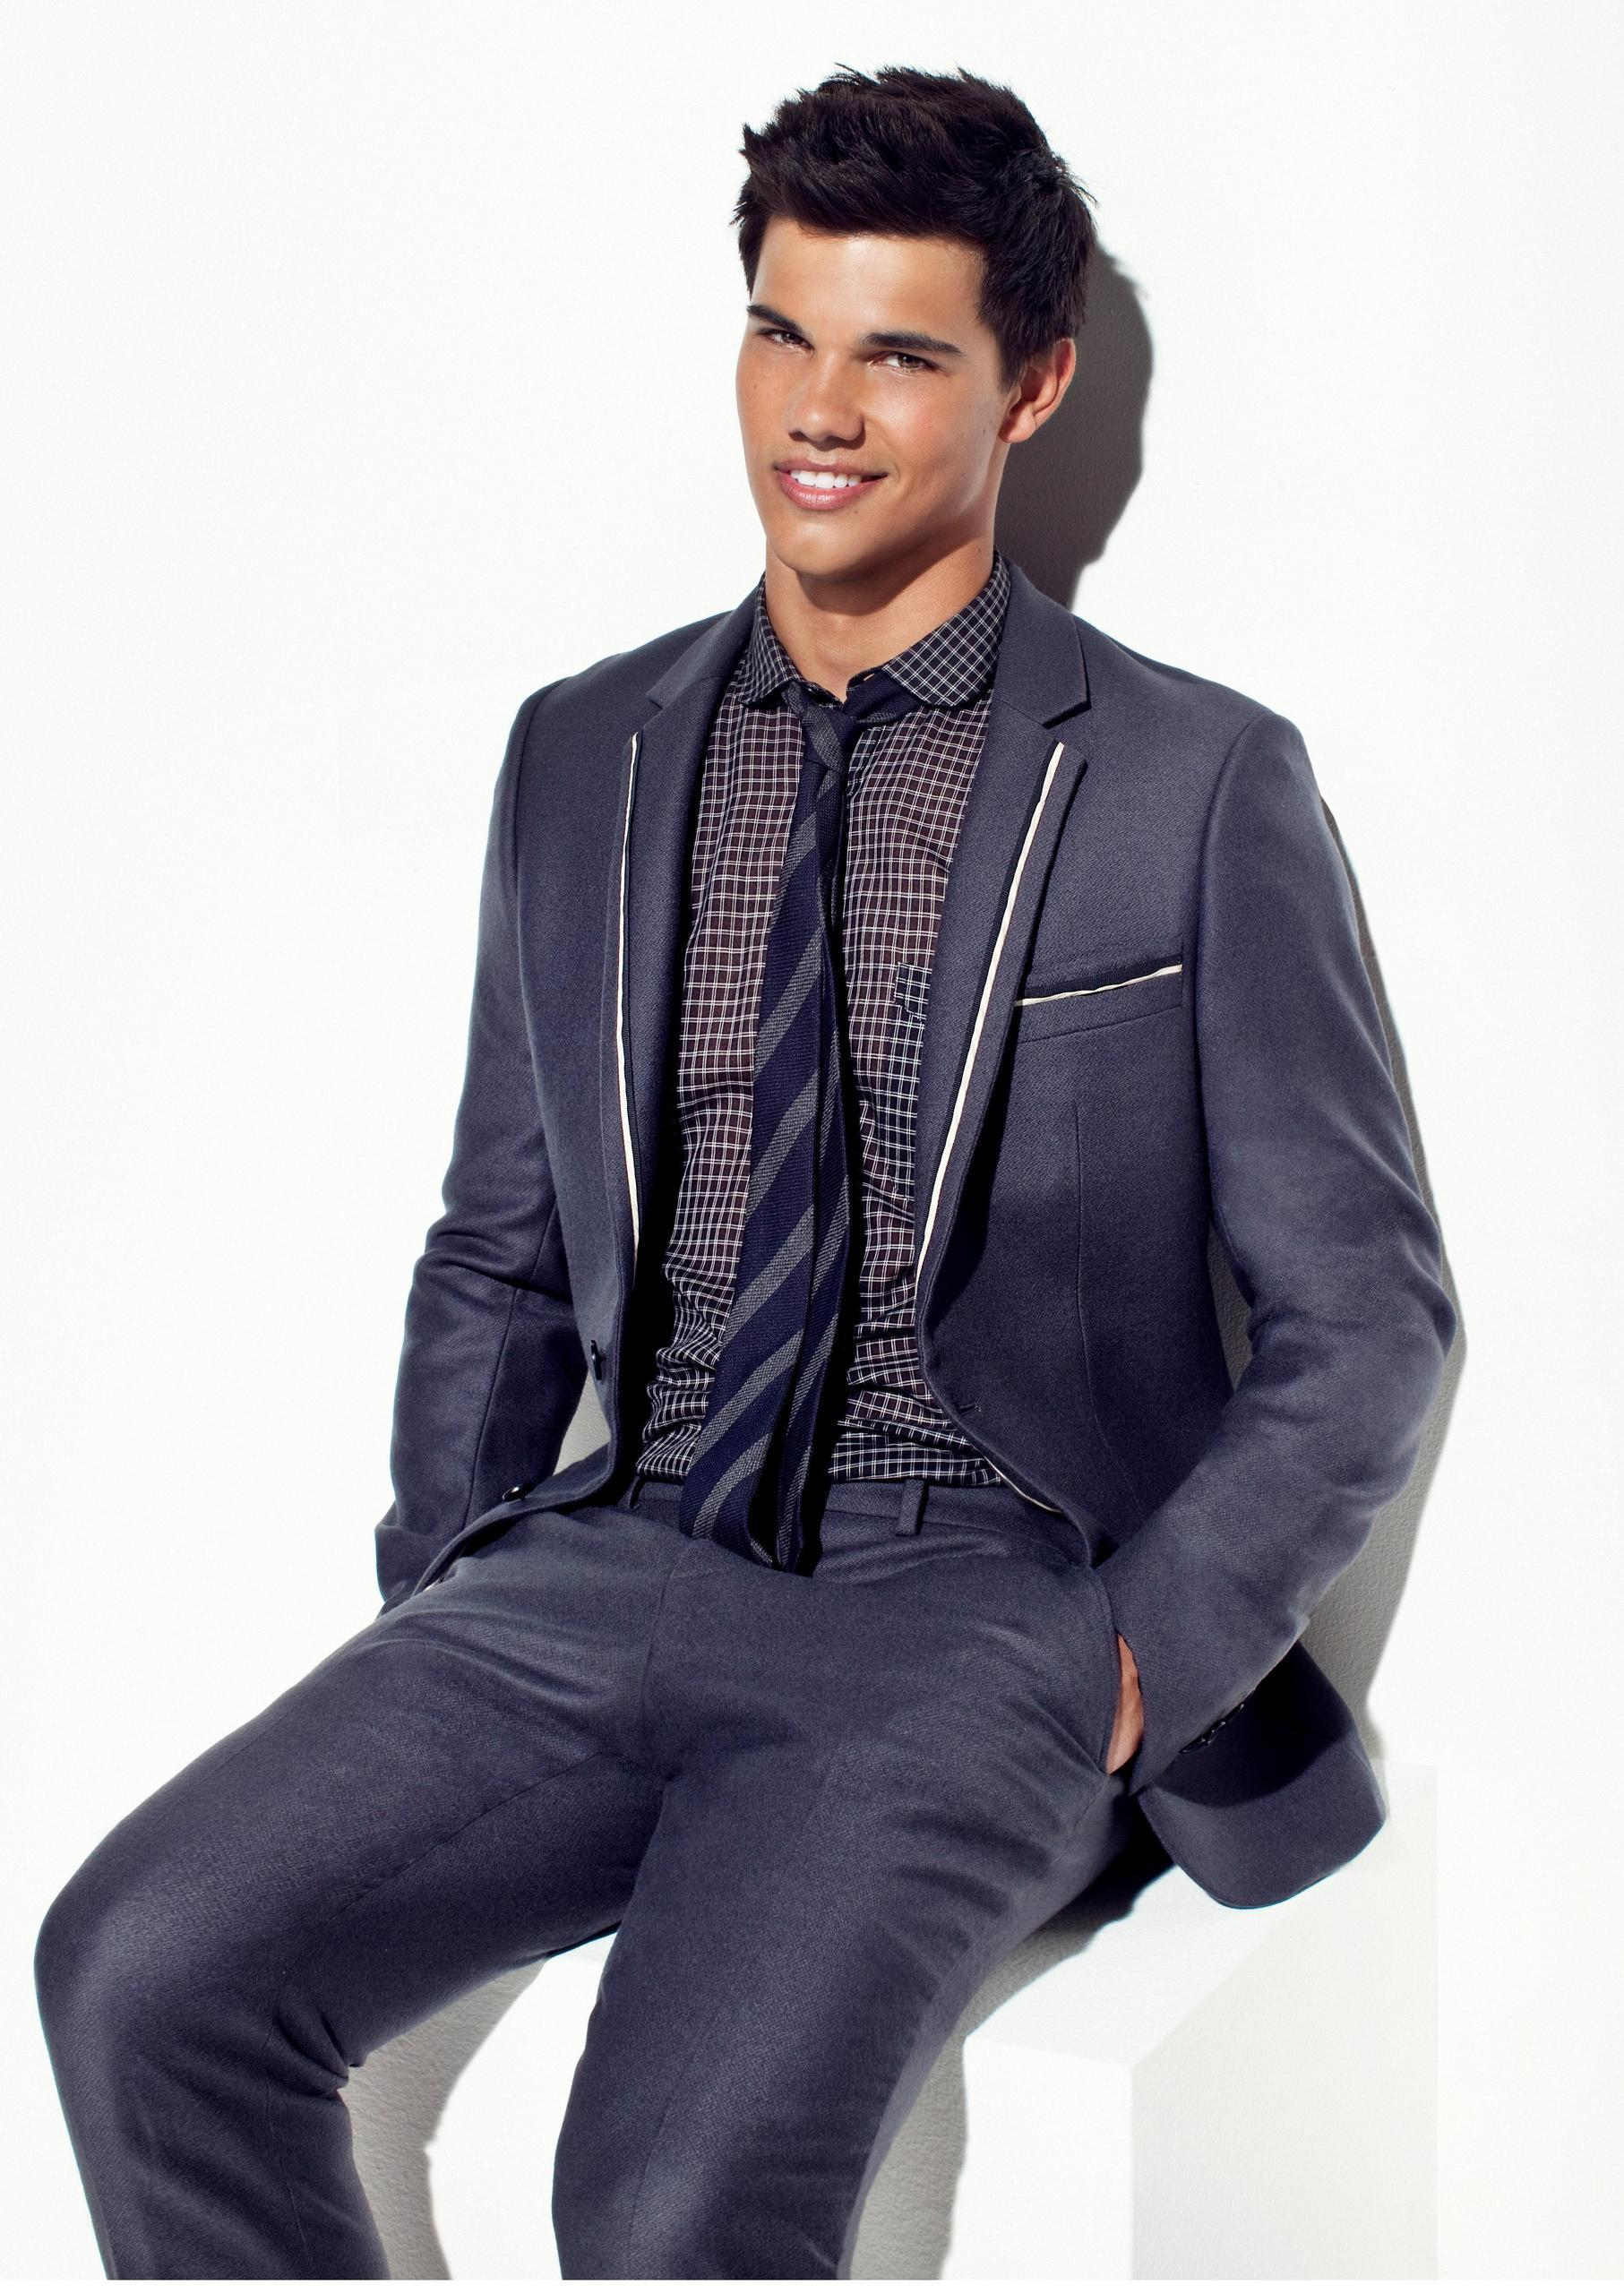 http://images2.fanpop.com/image/photos/9600000/just-taylor-taylor-lautner-9628662-1813-2560.jpg